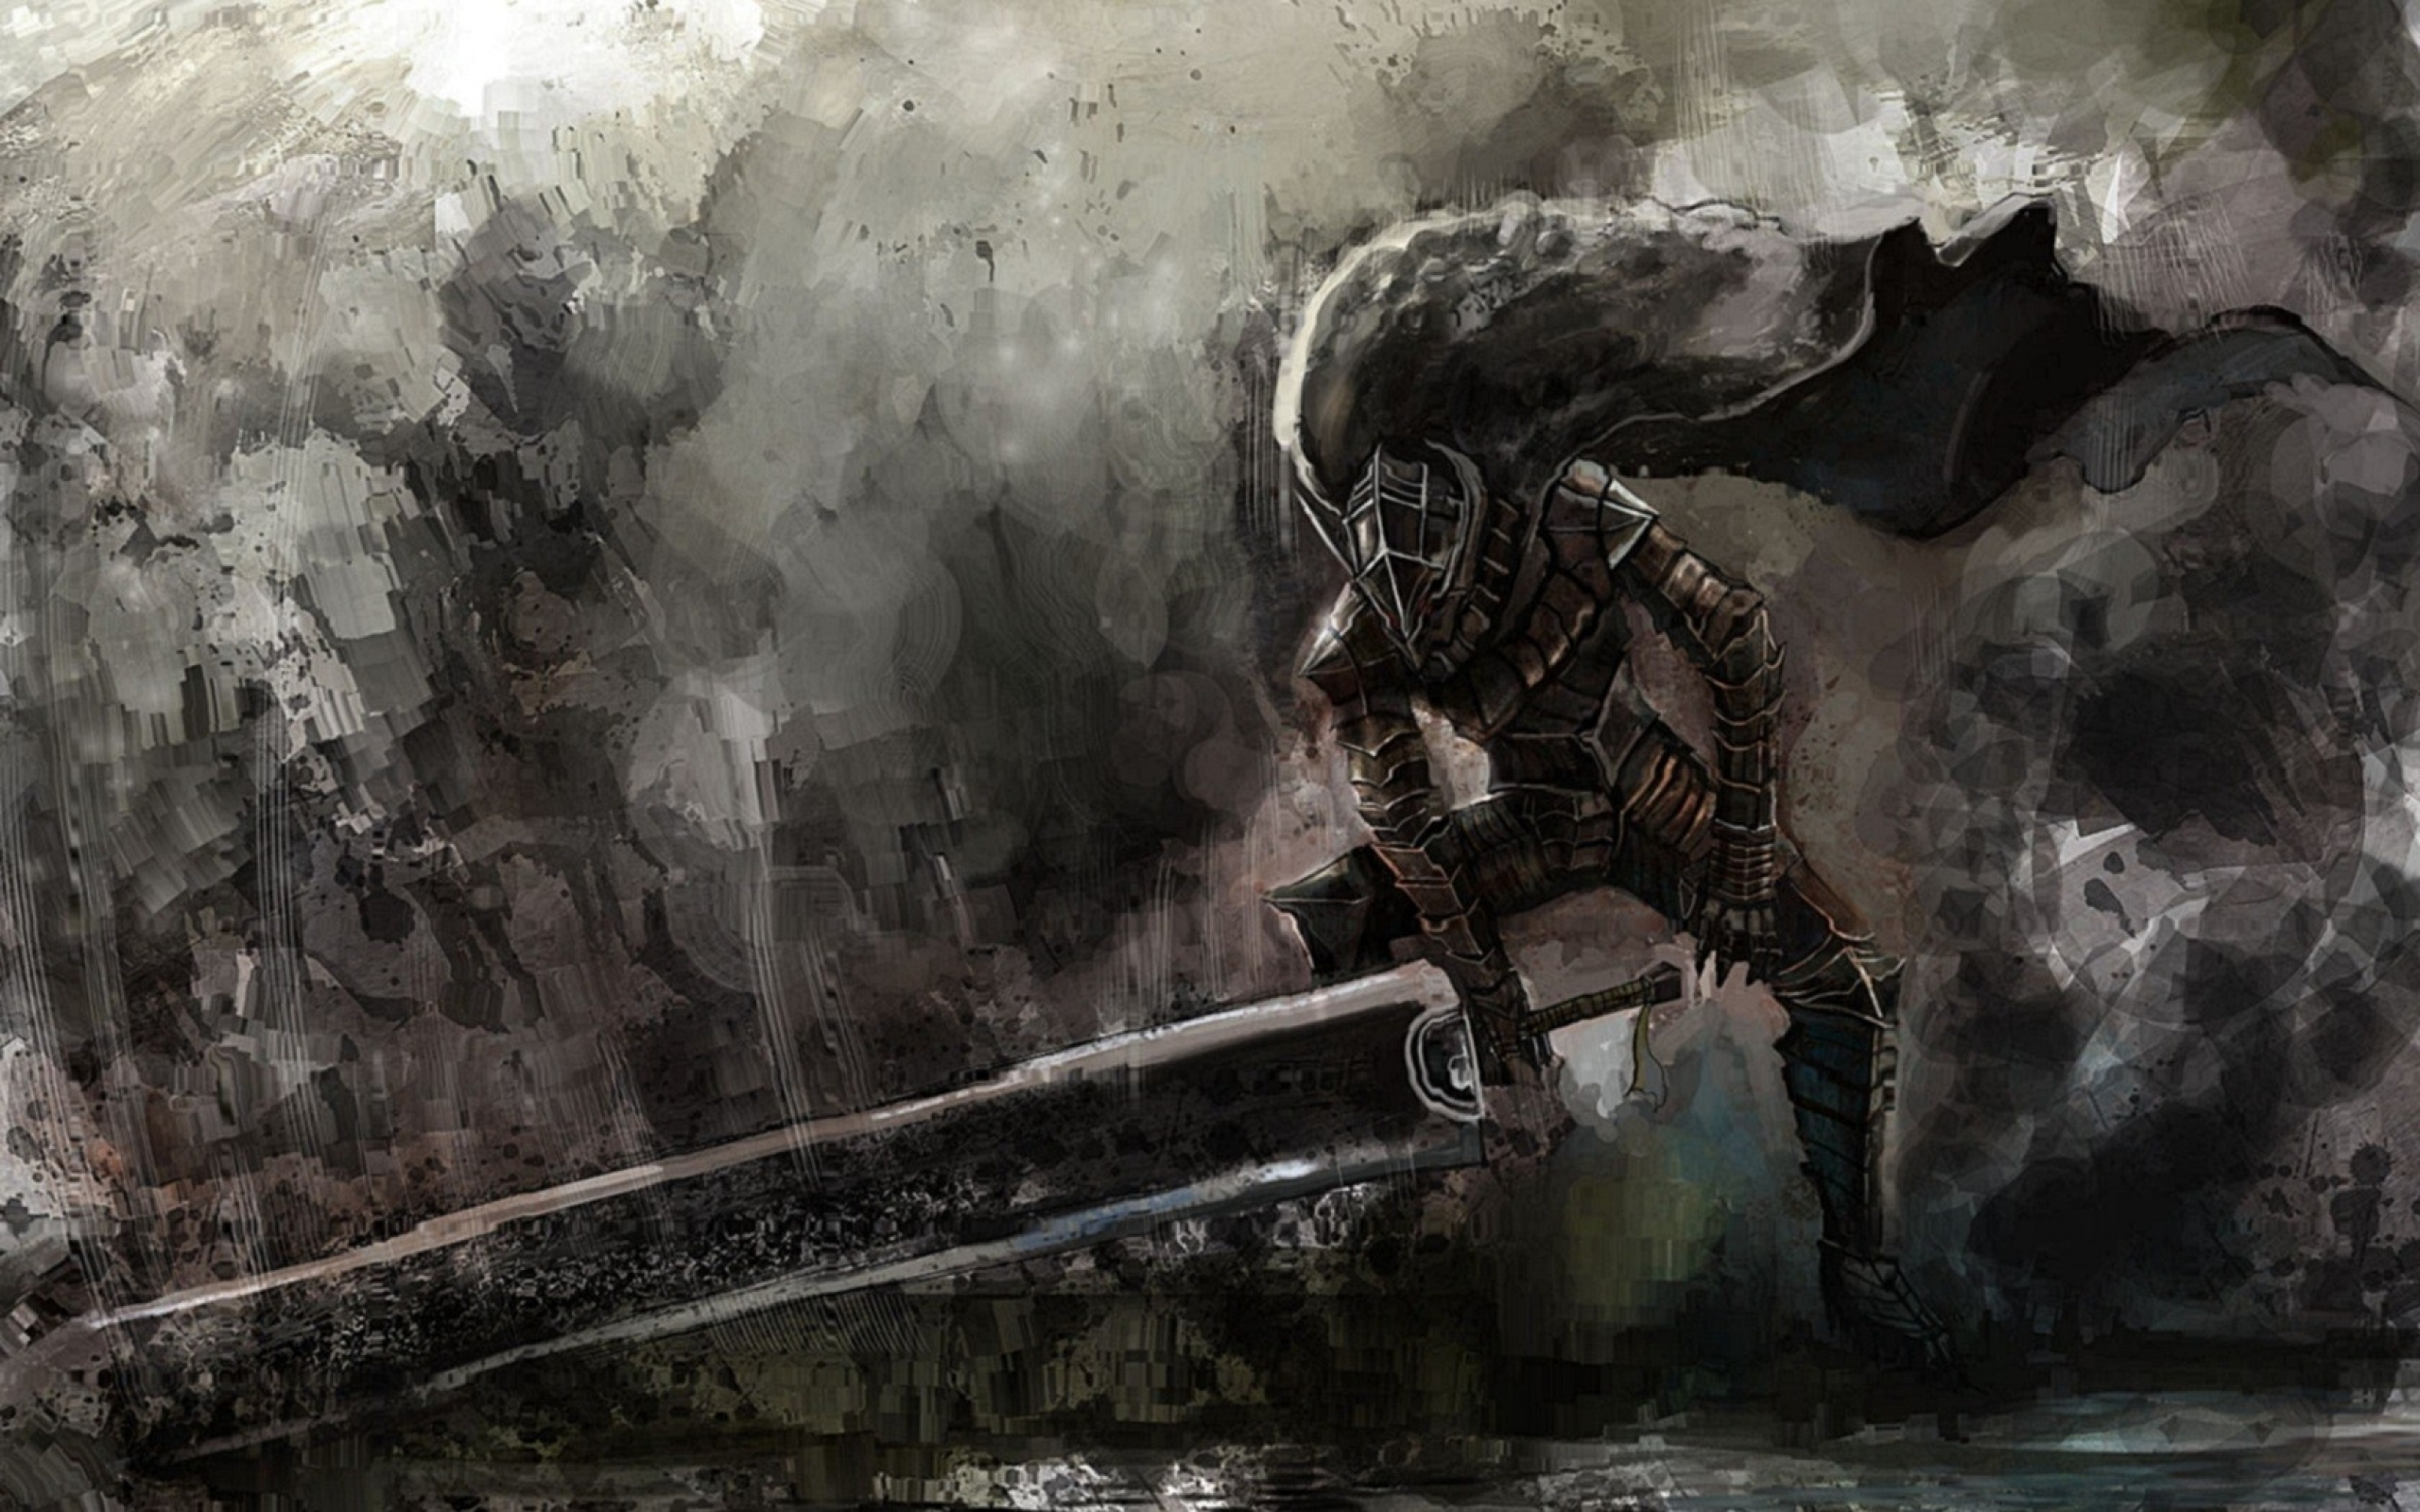 Dreamy Fantasy Berserk Warrior Swords Artwork Wallpaper